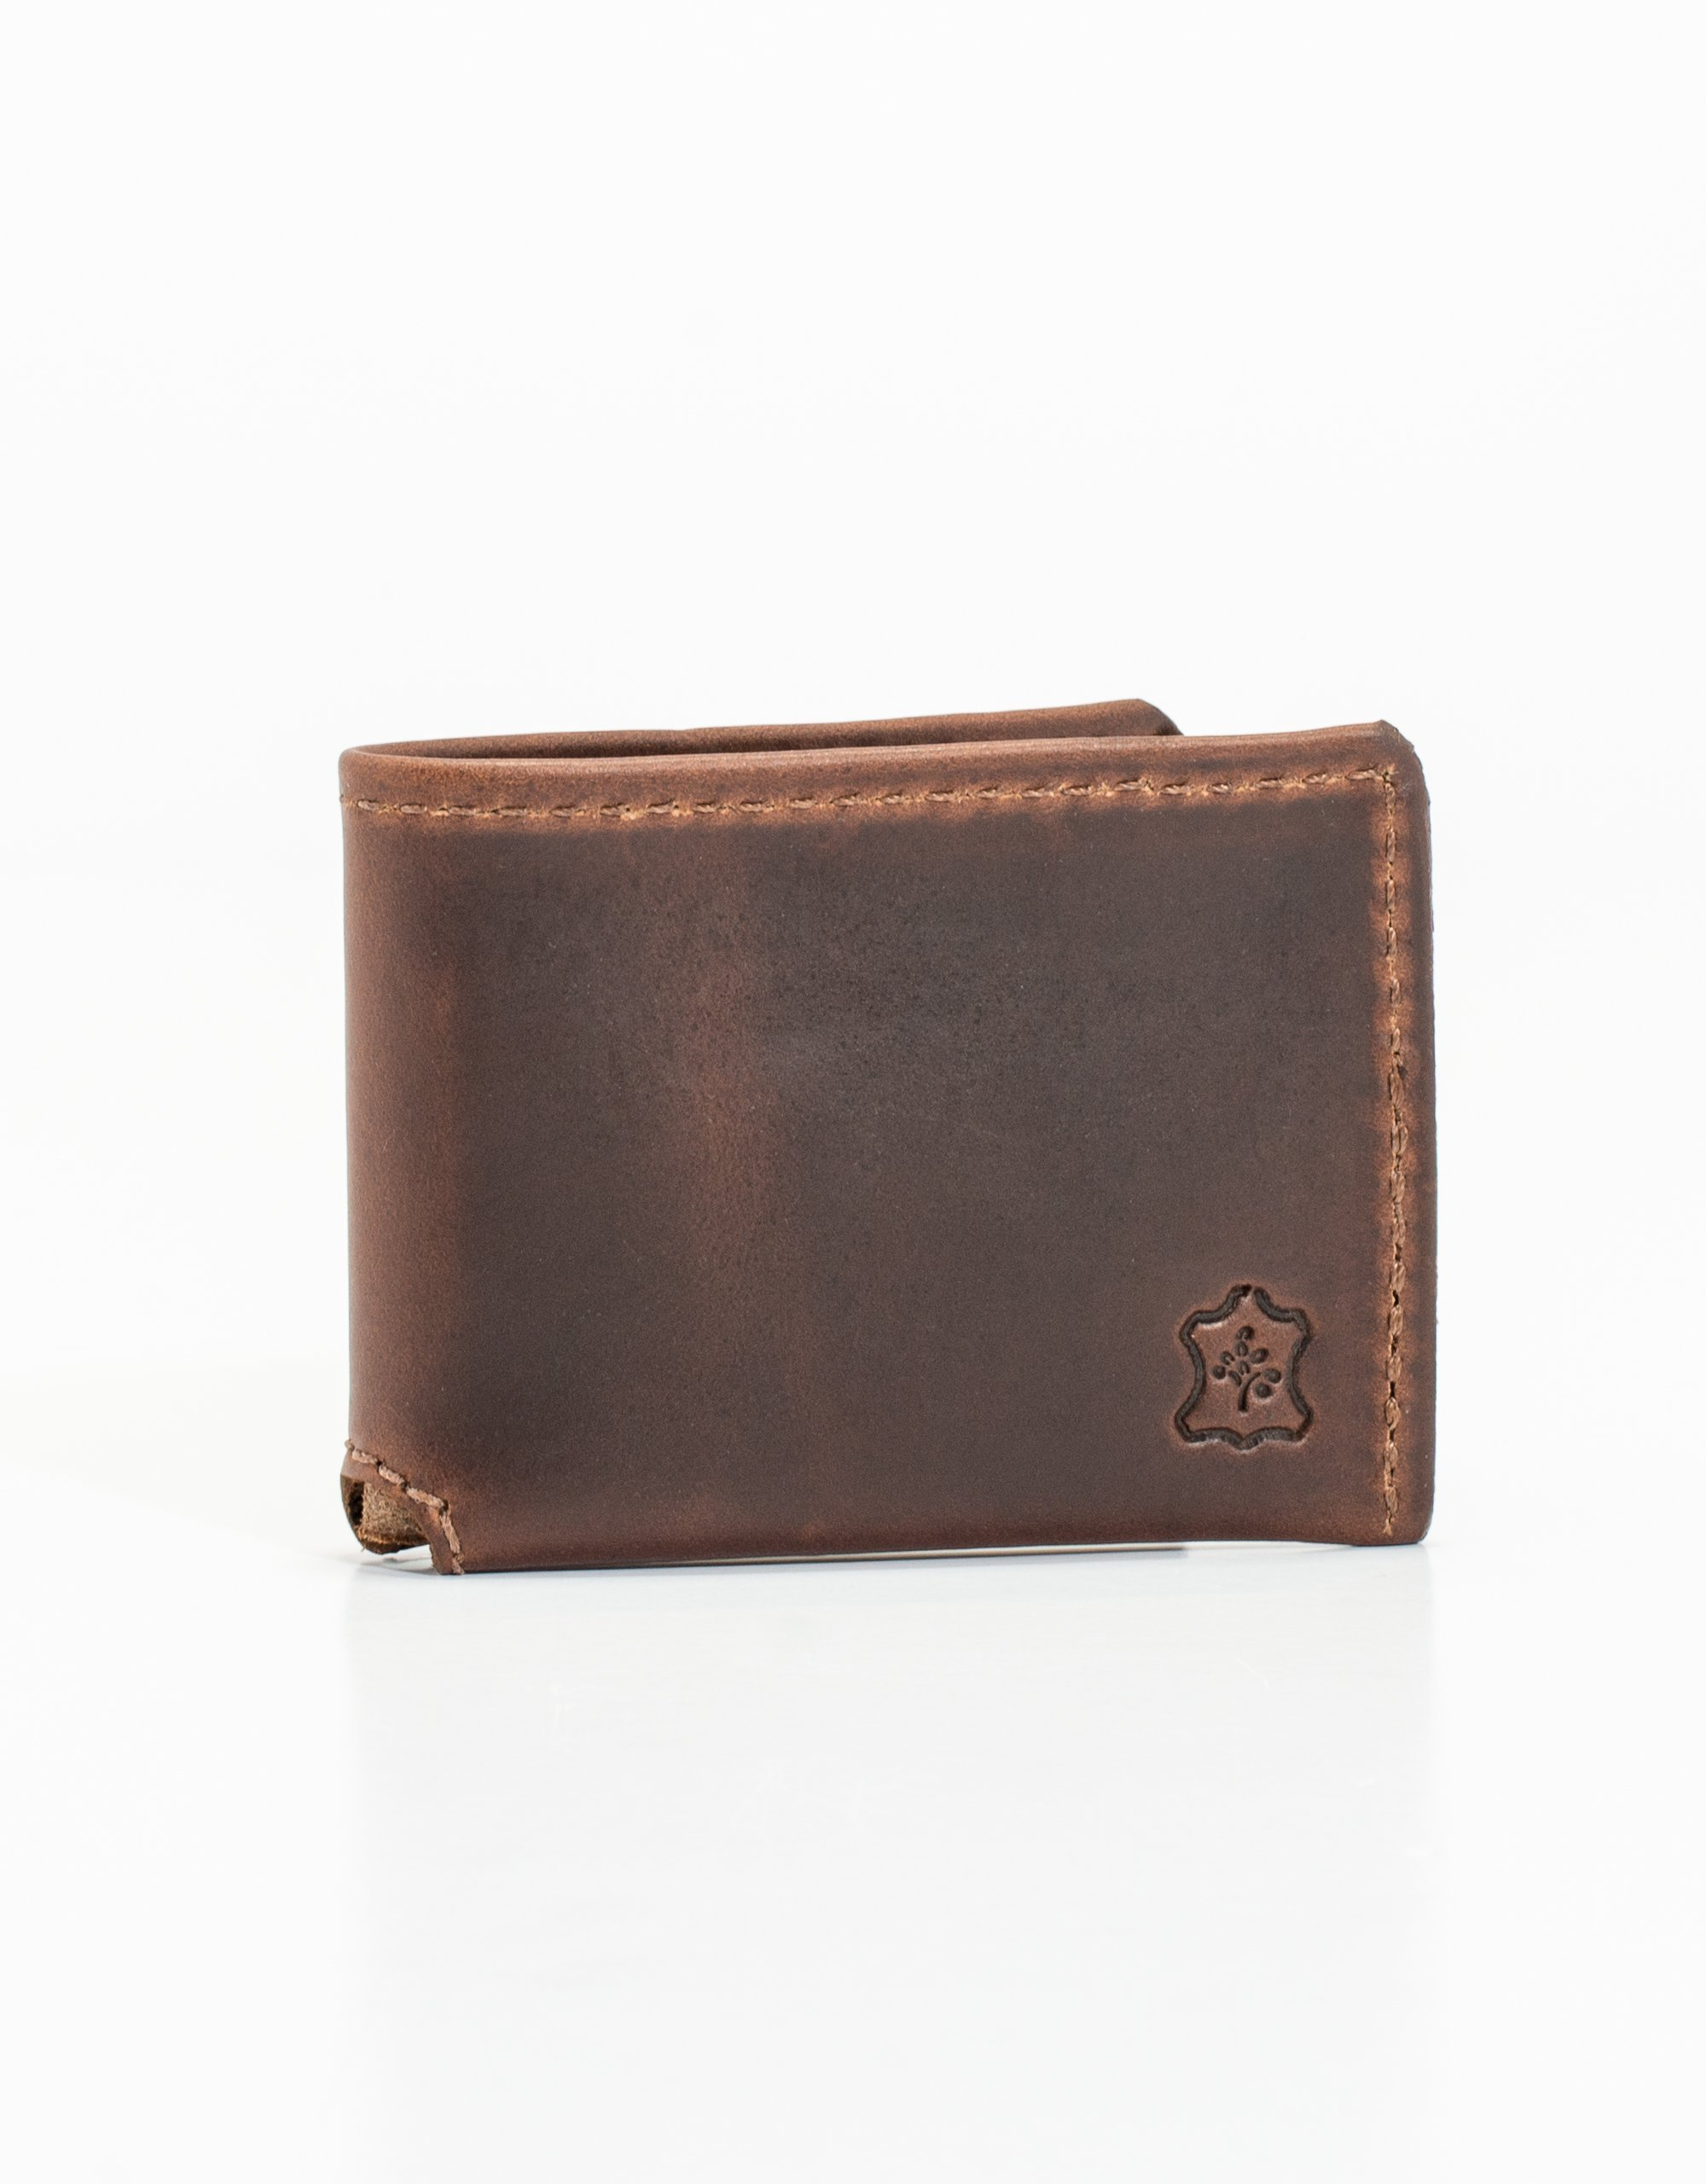 CLASSIC BI-FOLD LEATHER WALLET - BROWN – J.PRESS